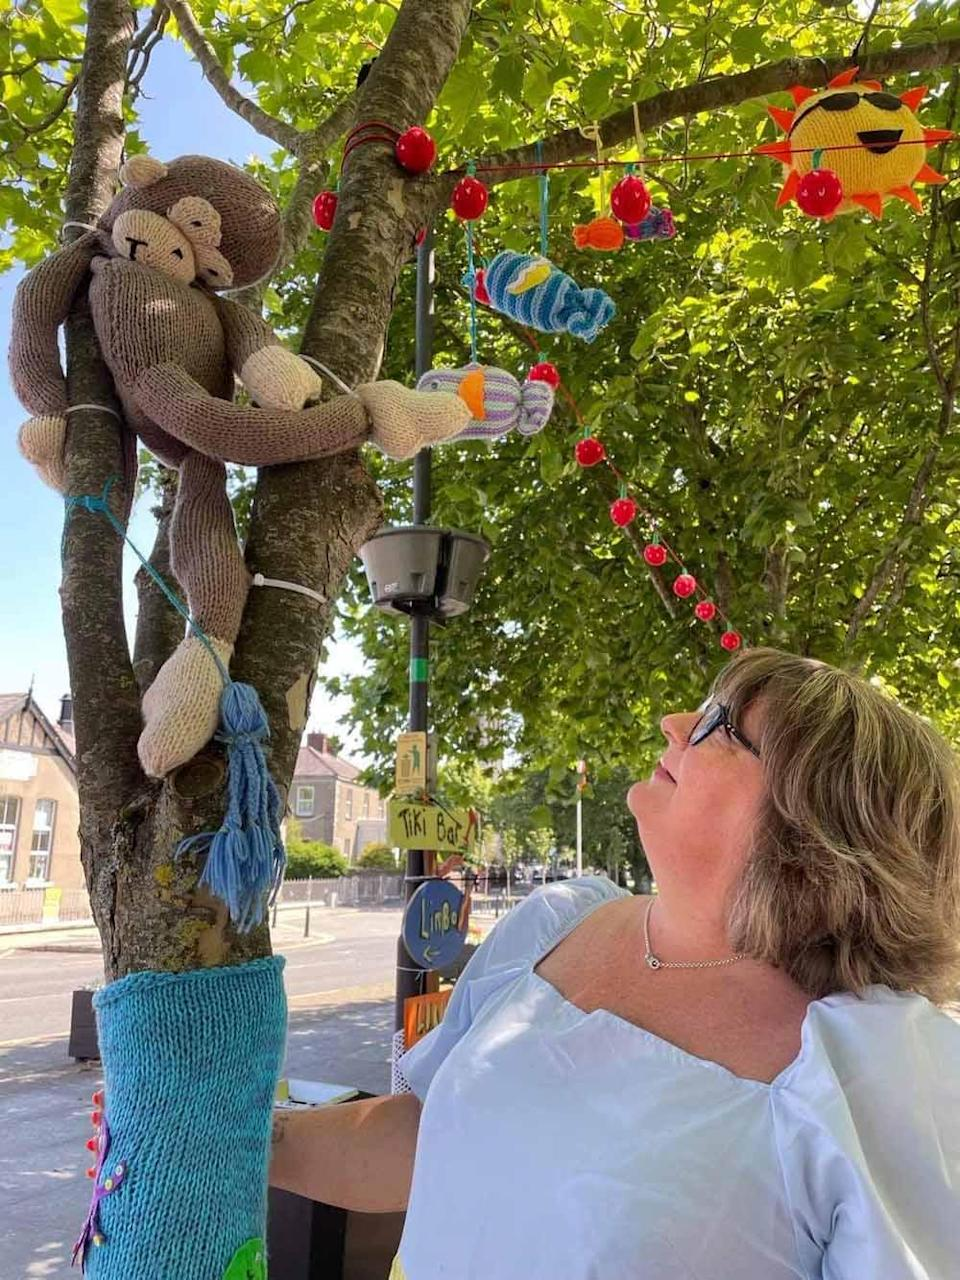 Monica with a knitted monkey in the yarn bombed town centre (Collect/PA Real Life).